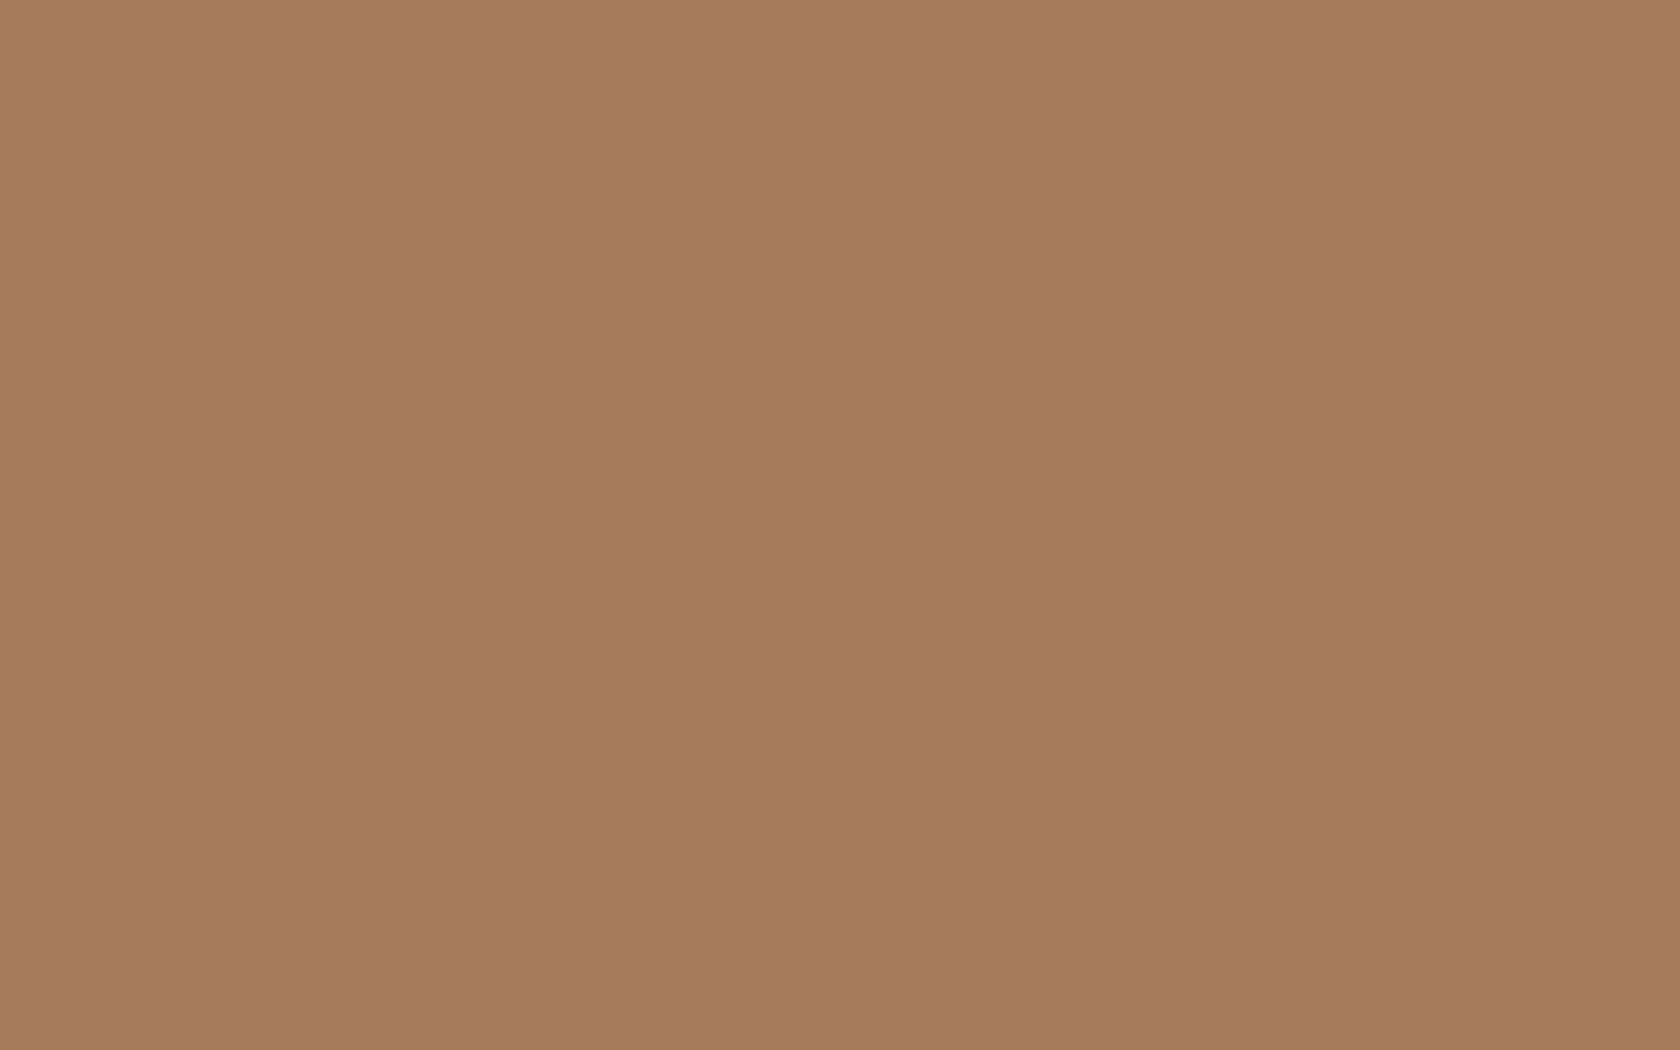 1680x1050 Tuscan Tan Solid Color Background